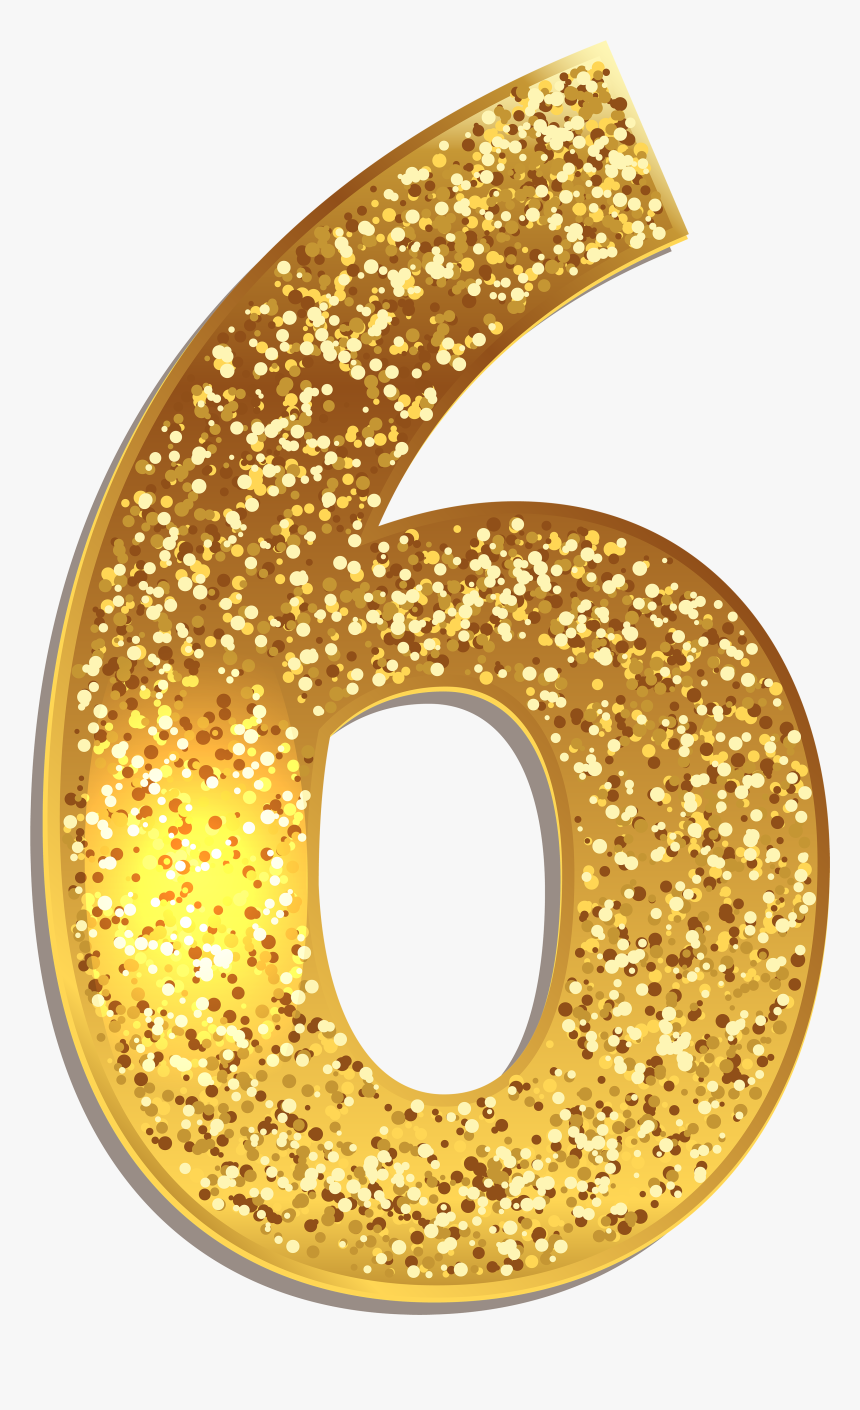 Six Gold Shining Png - Number 6 Gold Png, Transparent Png, Free Download